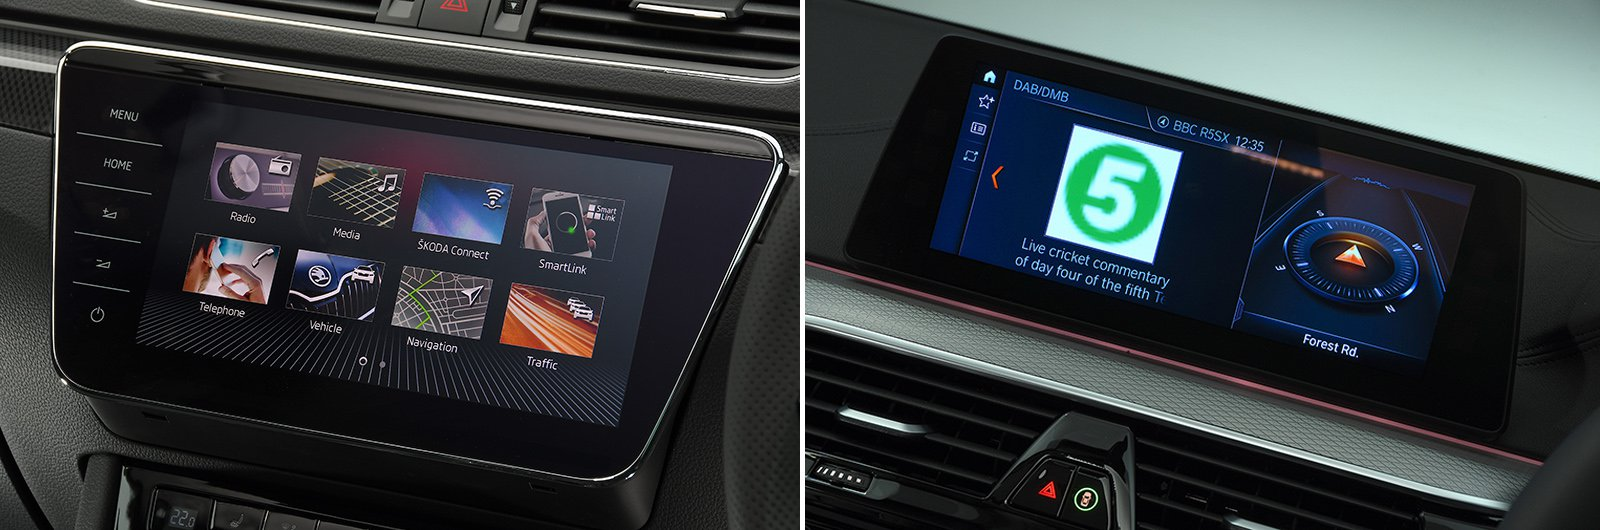 Superb vs 5 Series infotainment